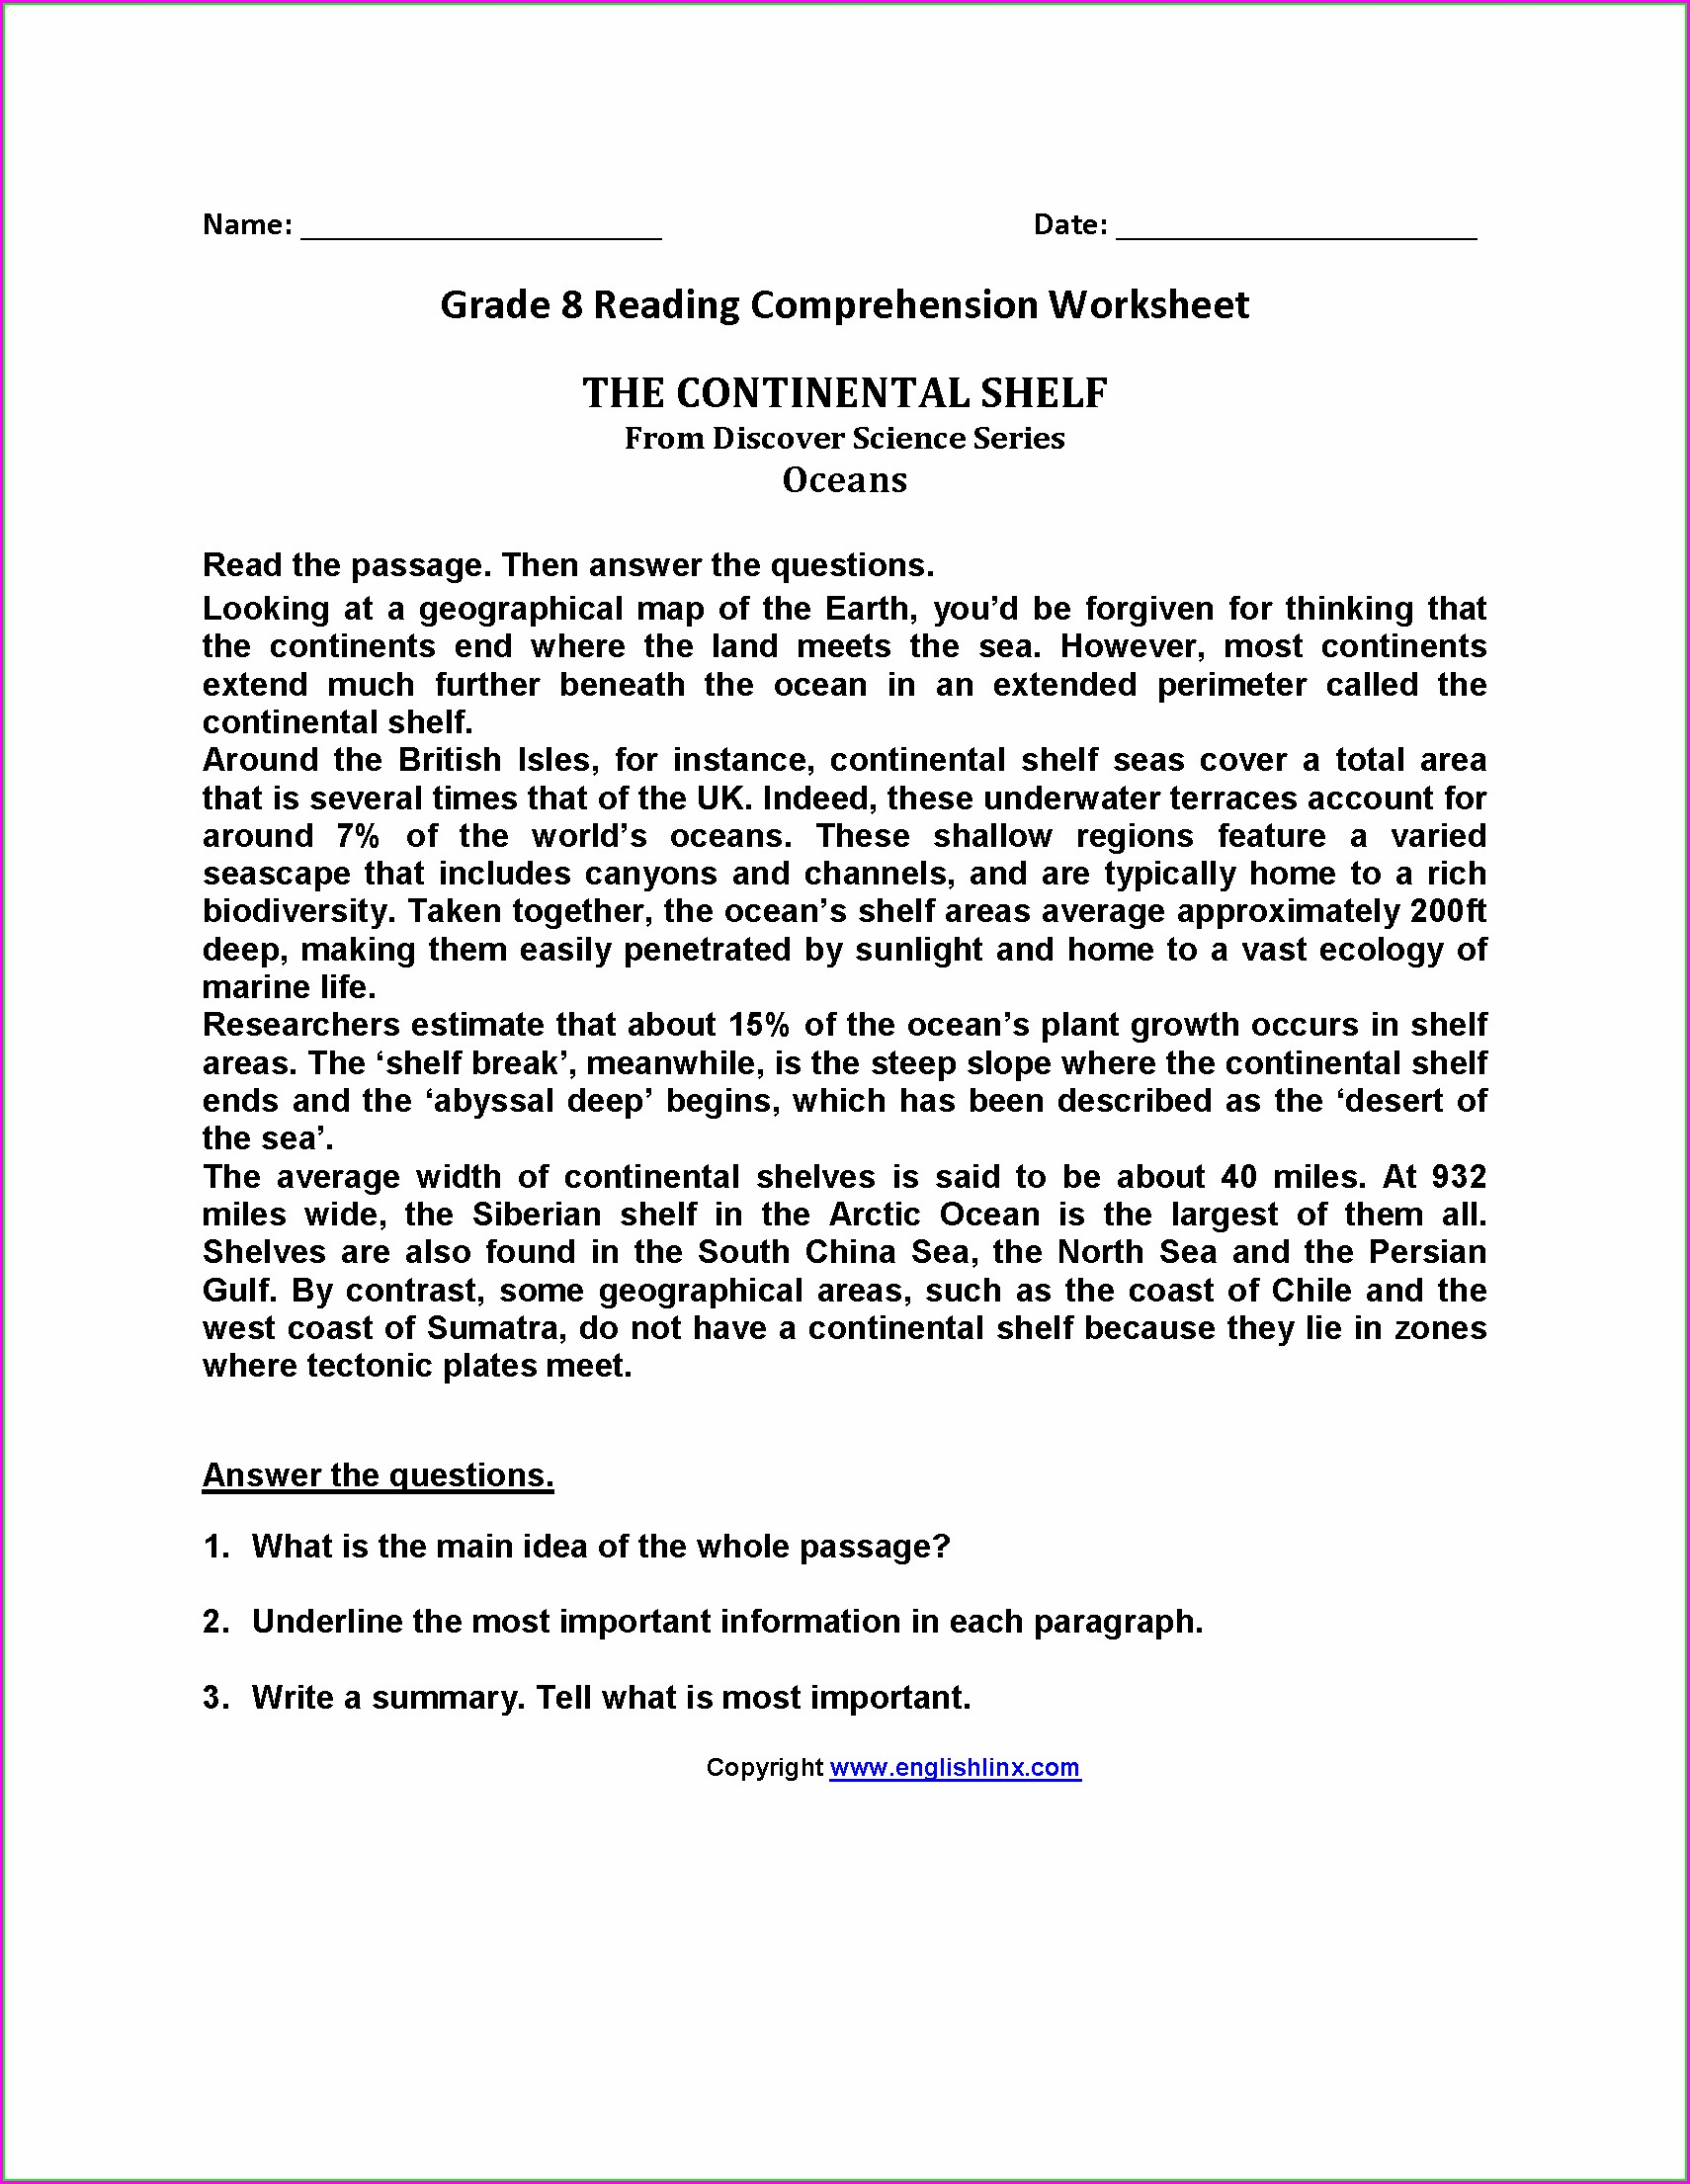 Reading Comprehension Worksheets Word Document